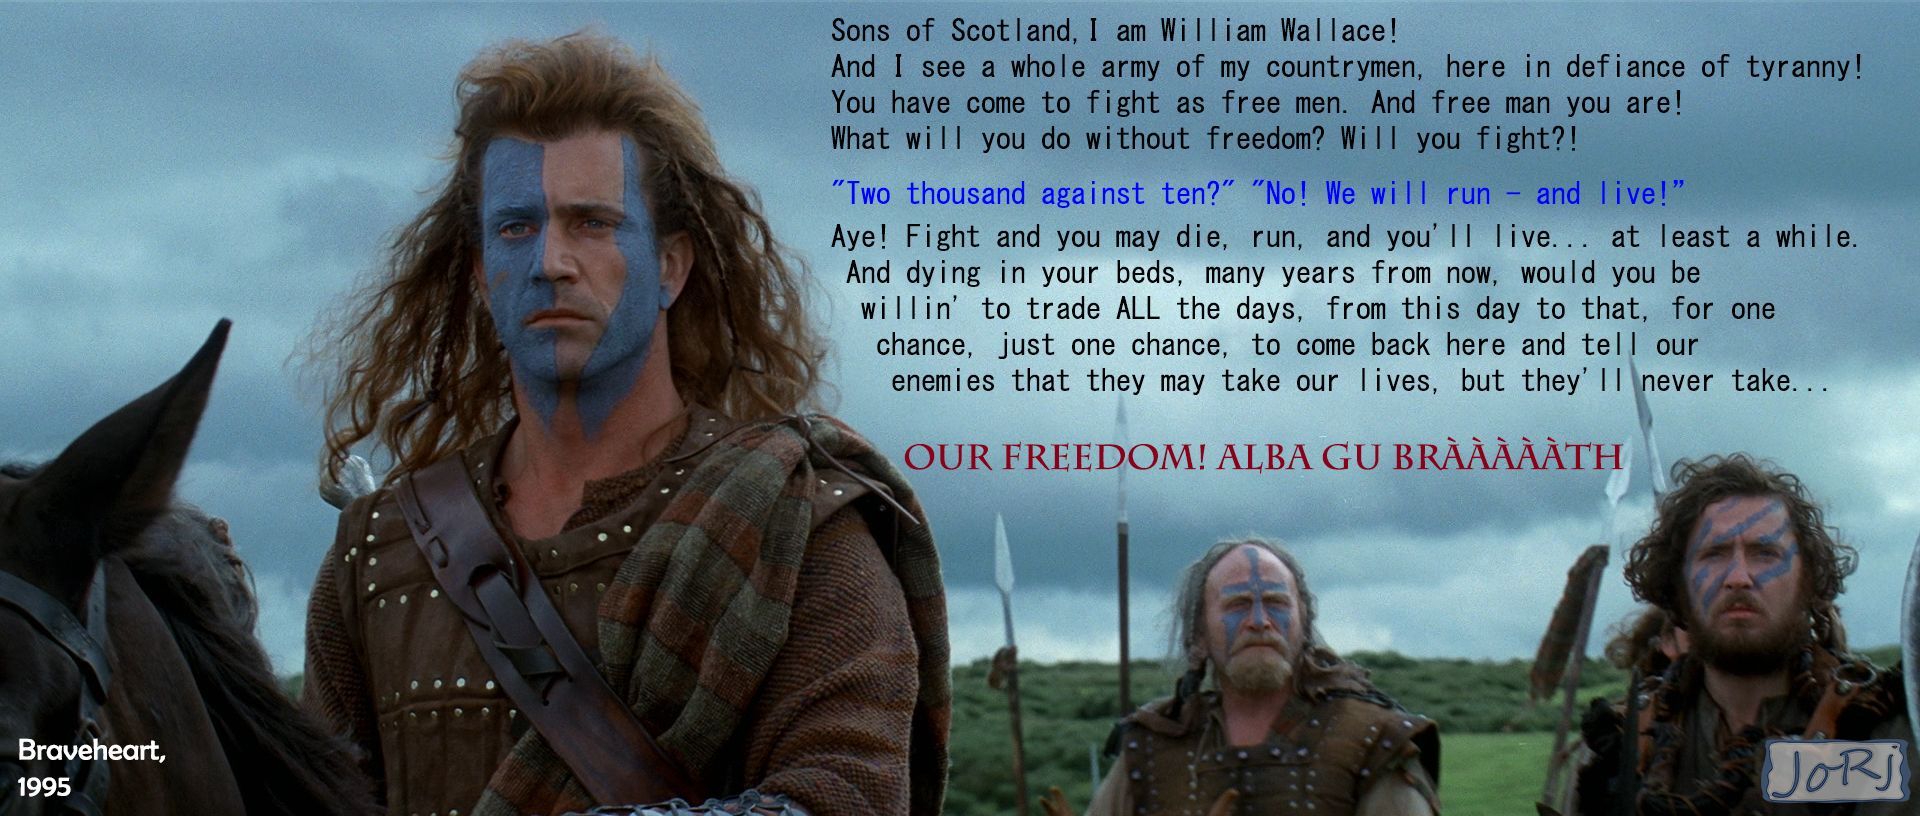 Gay Braveheart Spoof Kicks Off International Image Festival